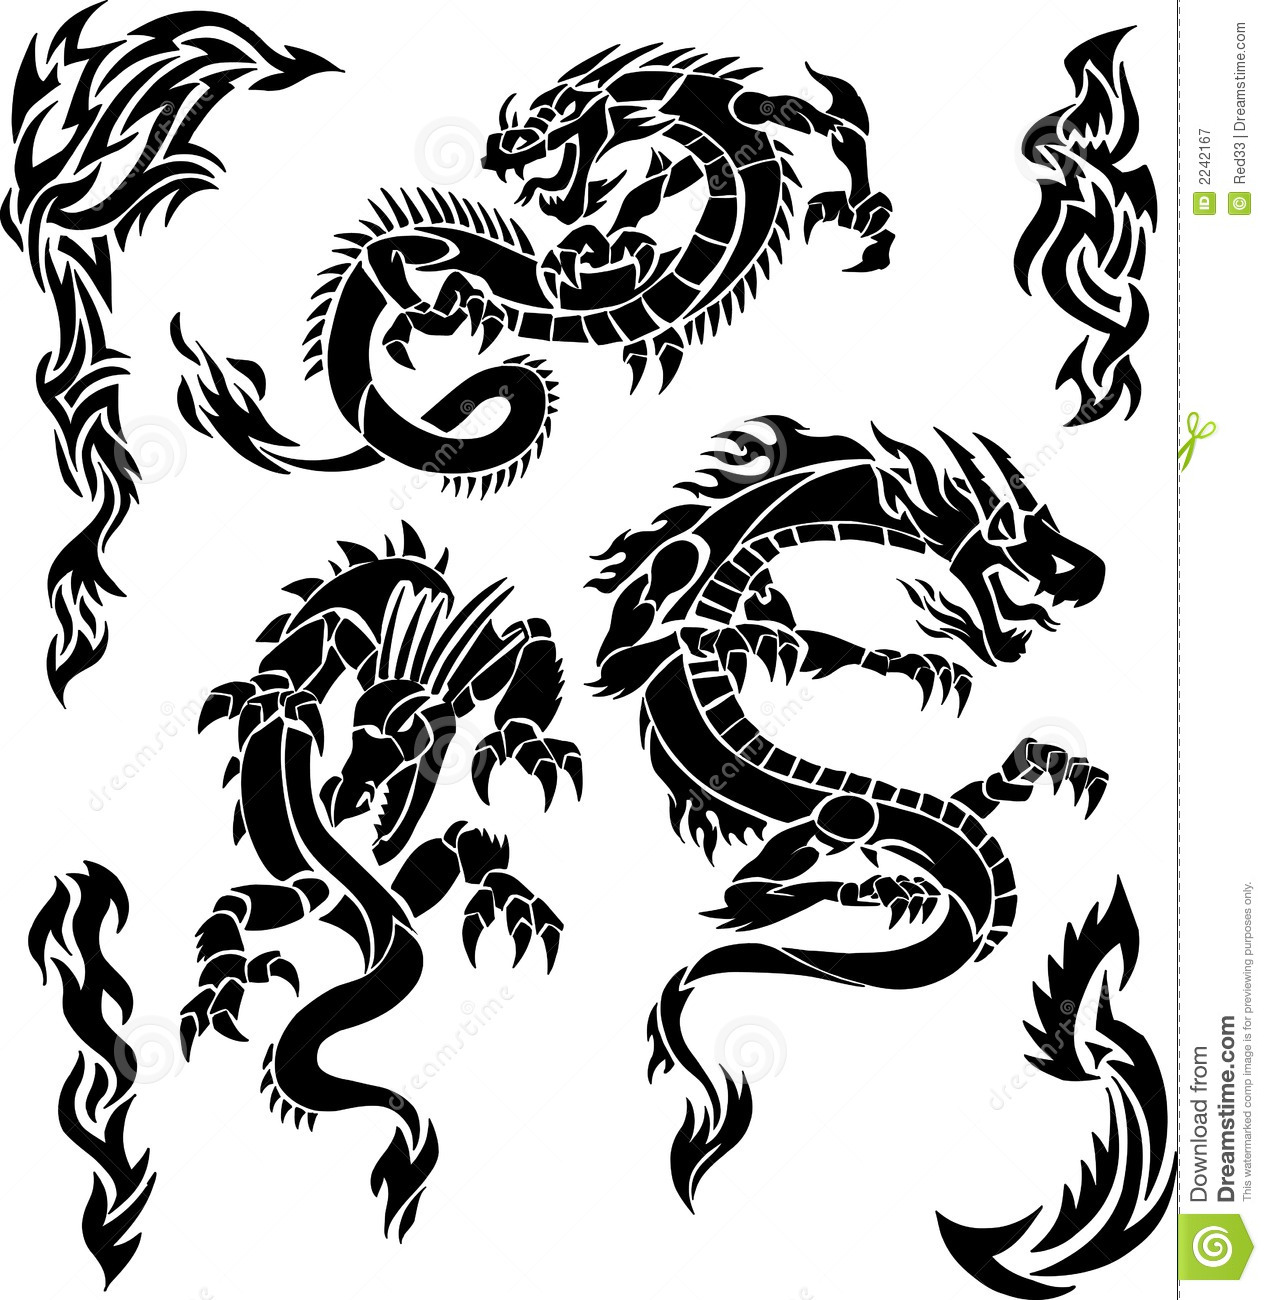 Vector Dragon Icons Royalty Free Stock Photography  Image